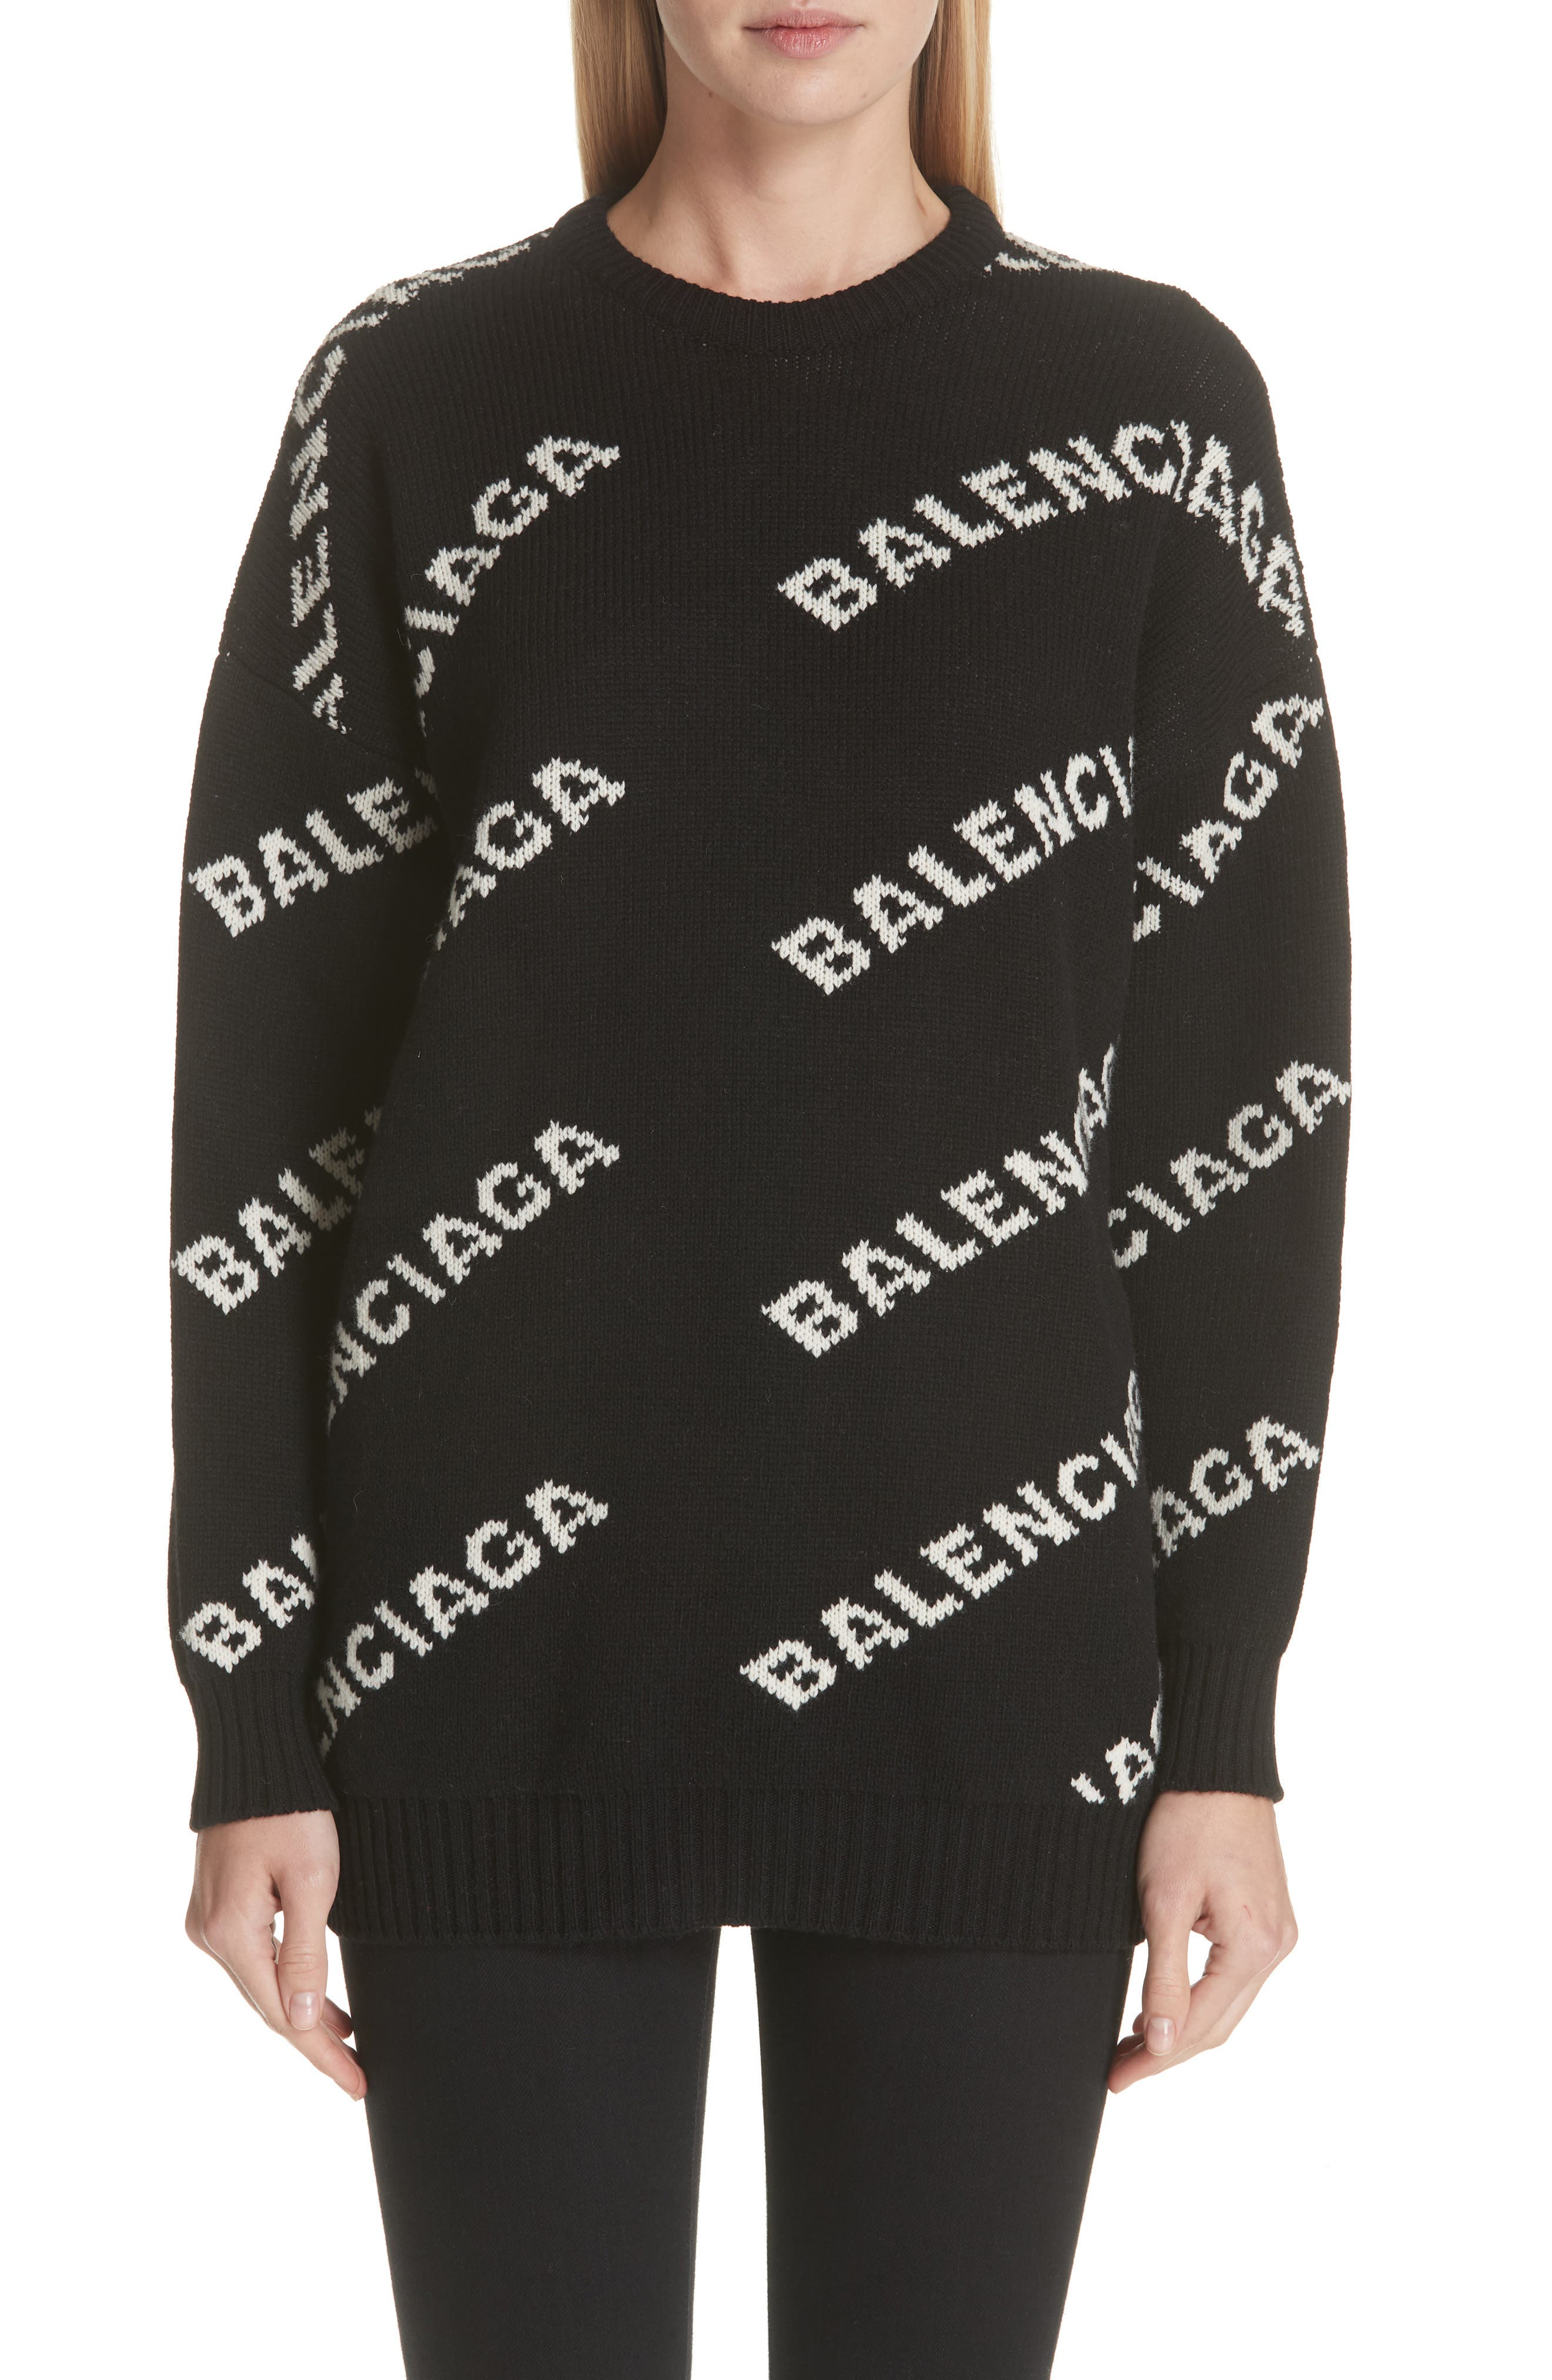 Balenciaga Logo Knit Wool Blend Sweater